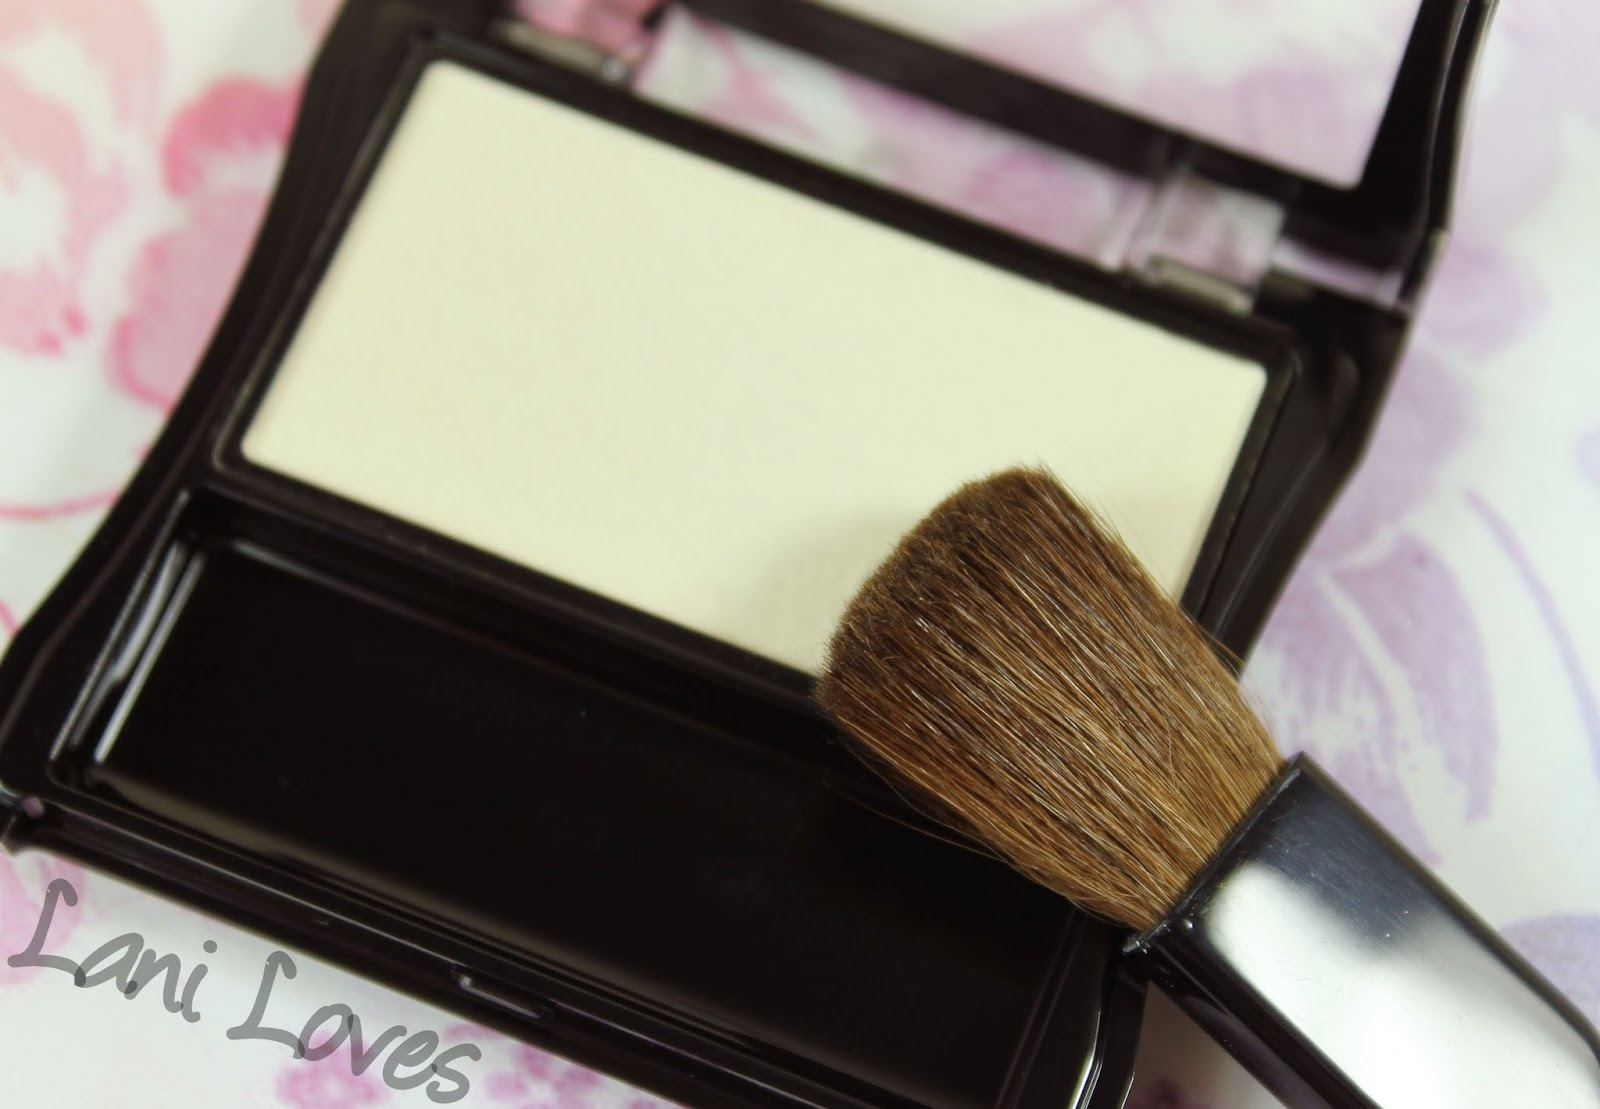 ZA Cheeks Groovy 05 June Bride Swatches & Review